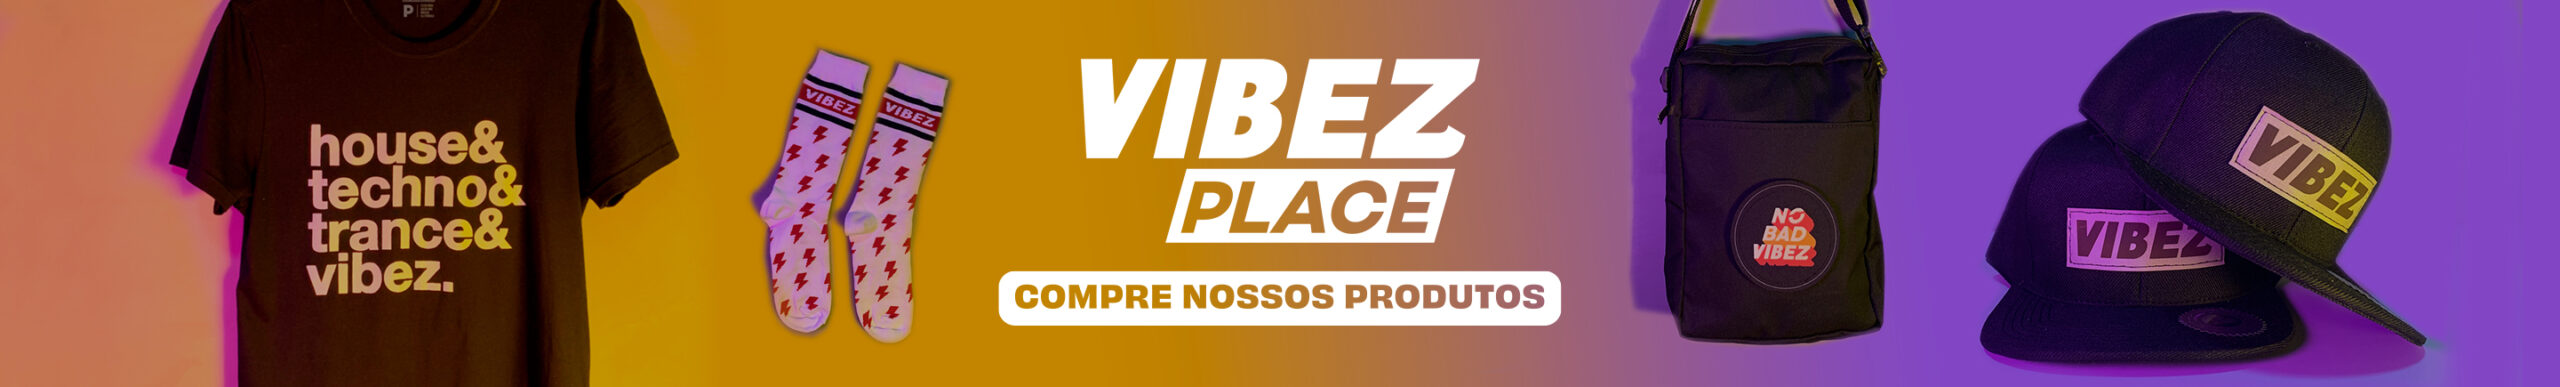 banner-home-vibezplace